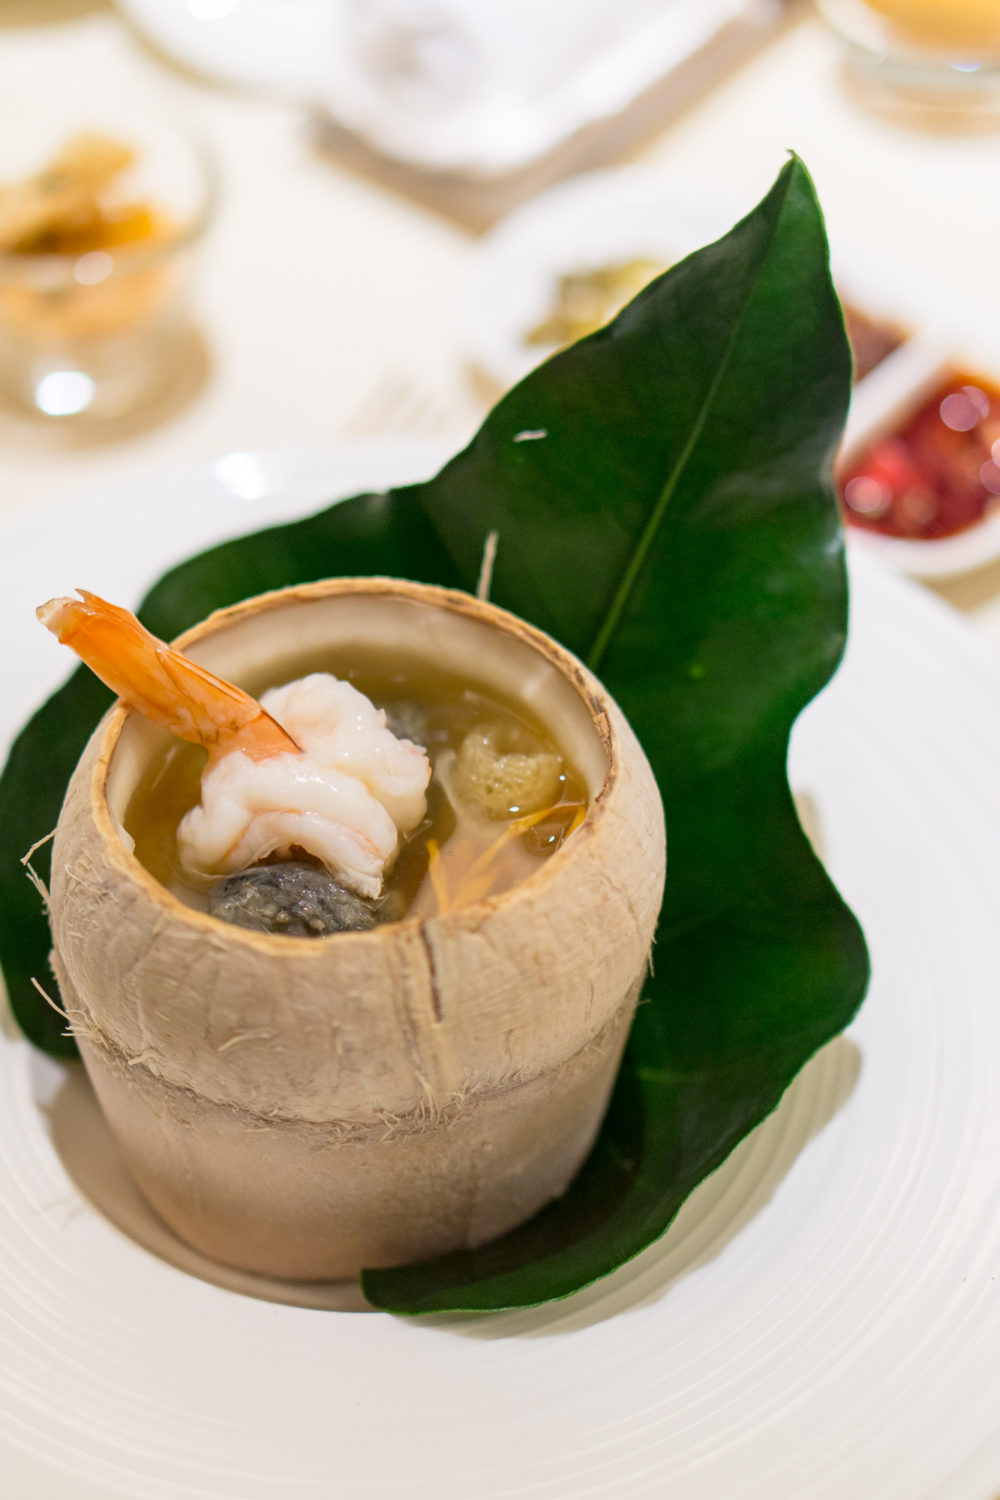 Chinese New Year 2018 - Golden Peony Conrad Centennial Singapore - Double-boiled Cordycep Flower Soup with New-Caledonia Obsiblue Prawn and Black Chicken in Whole Young Coconut